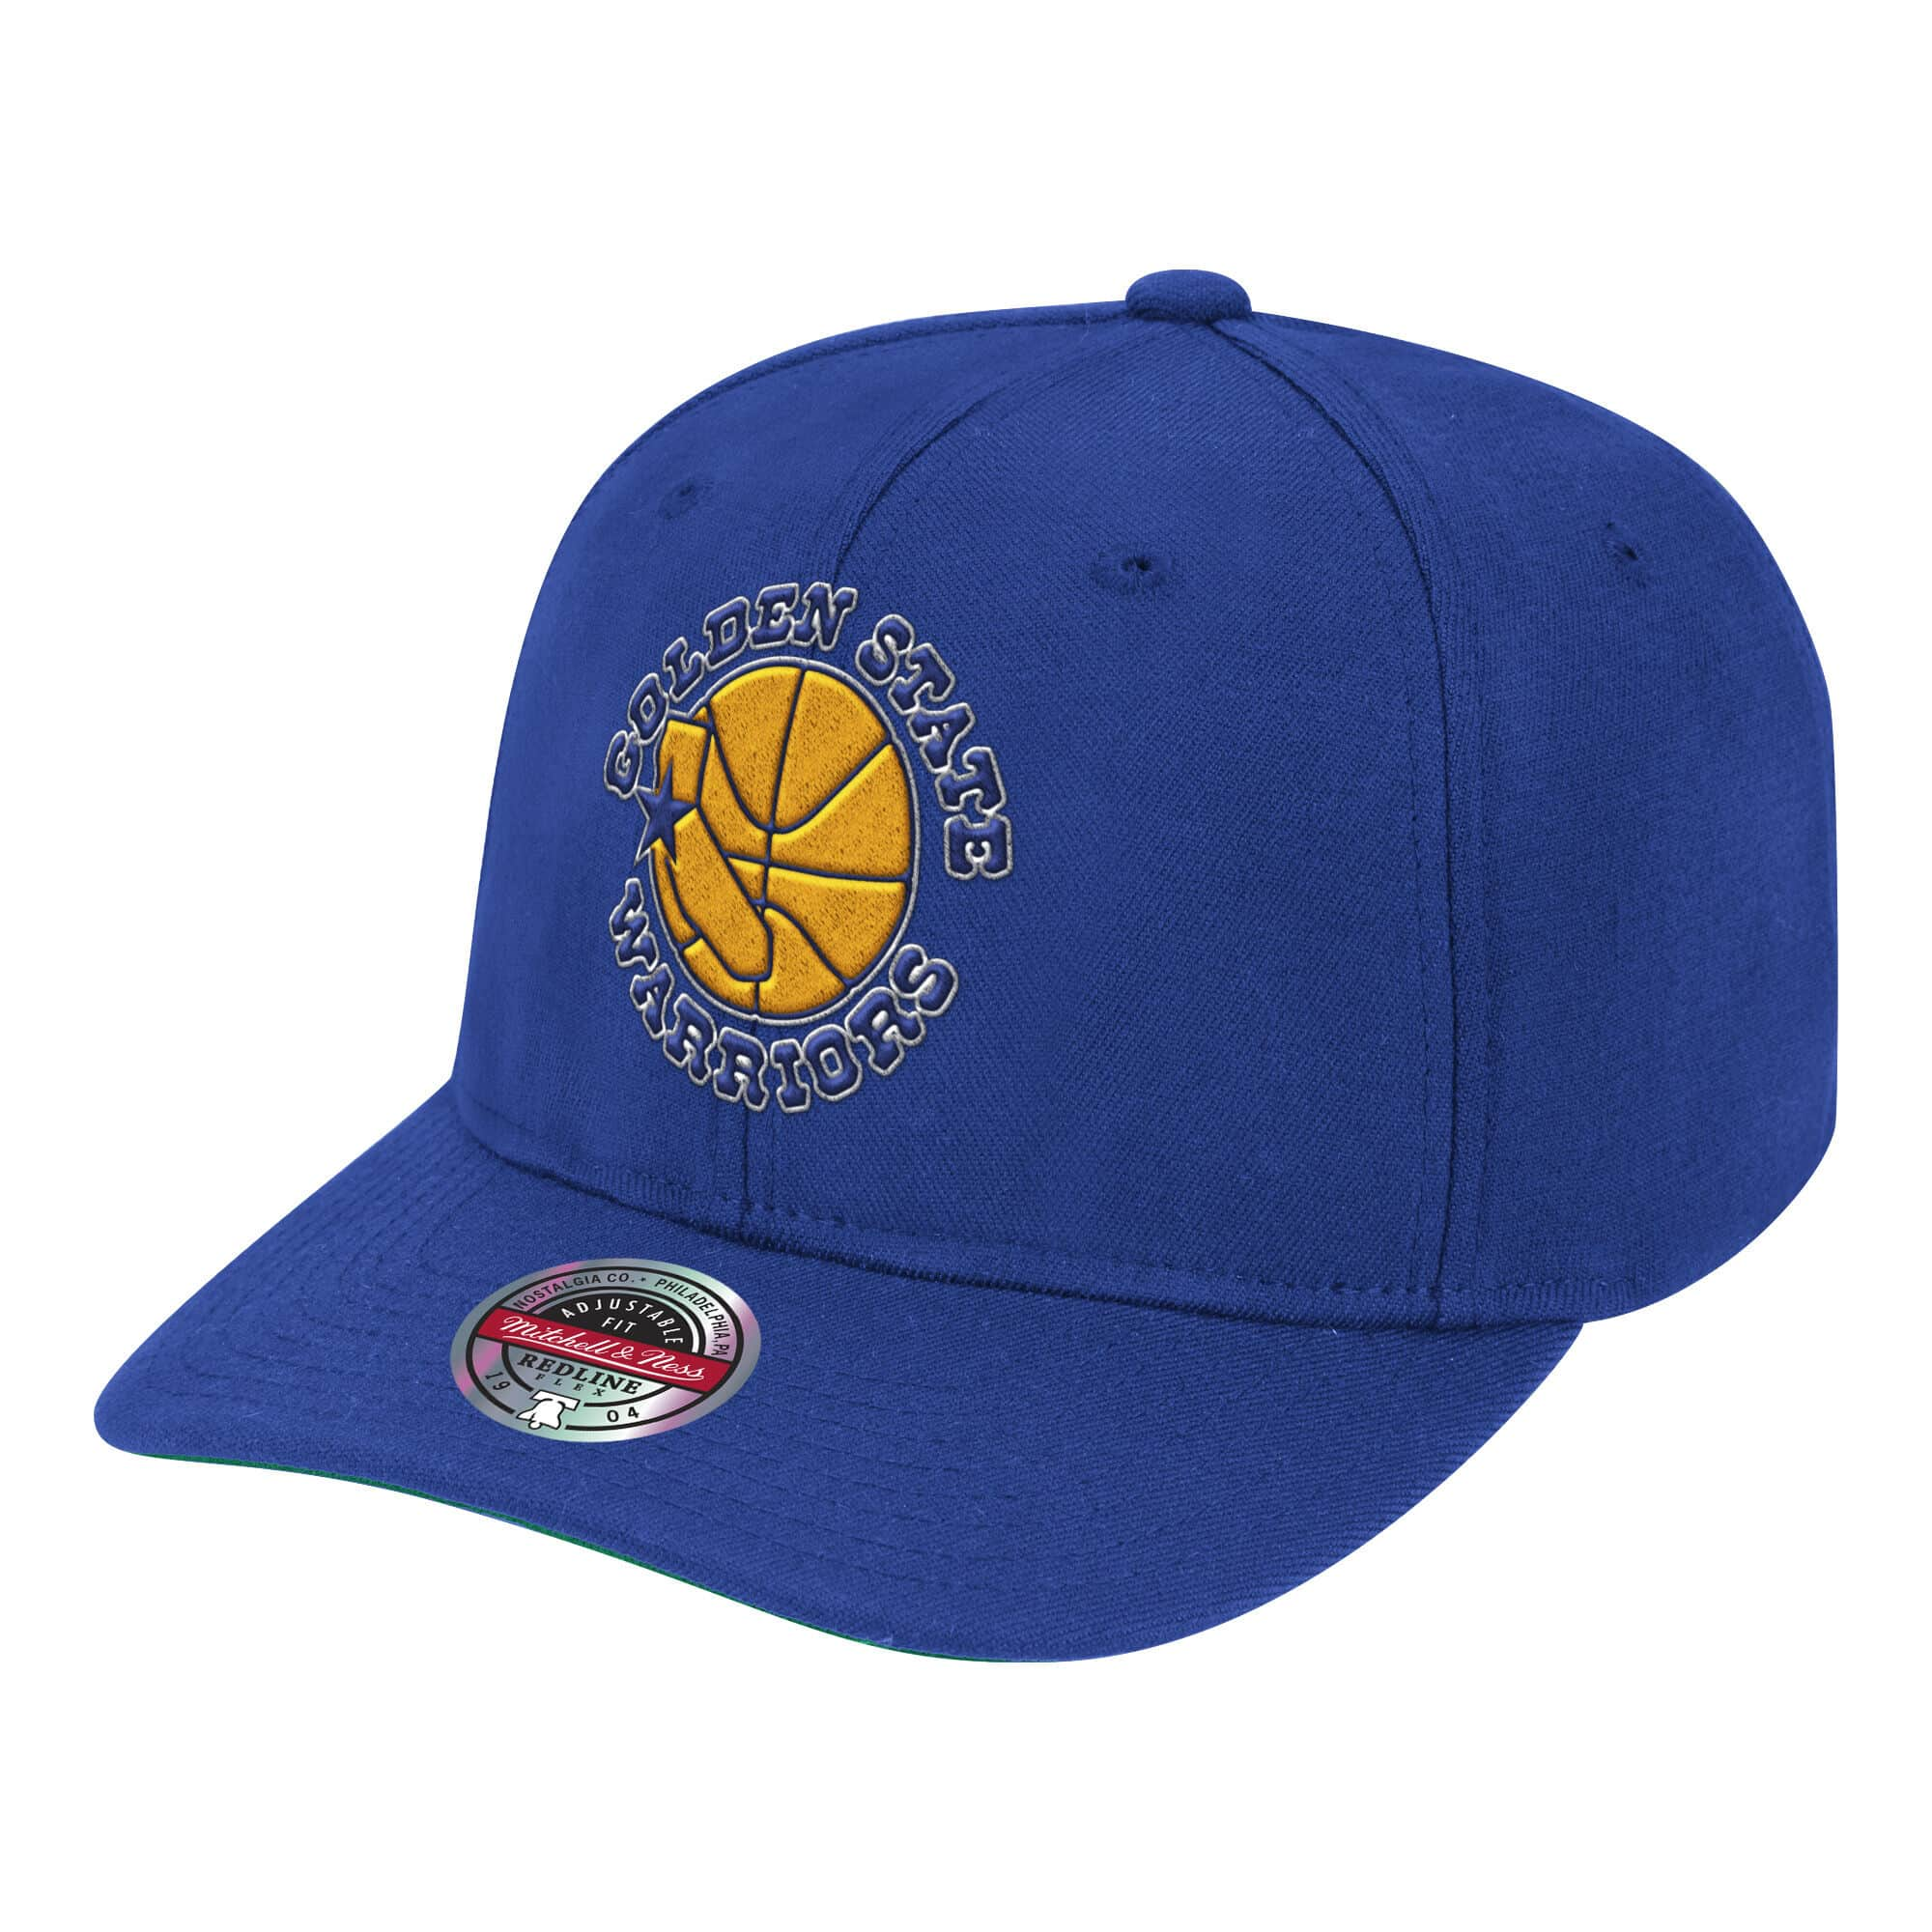 Golden State Warriors Snap Back (Blue/Yellow)